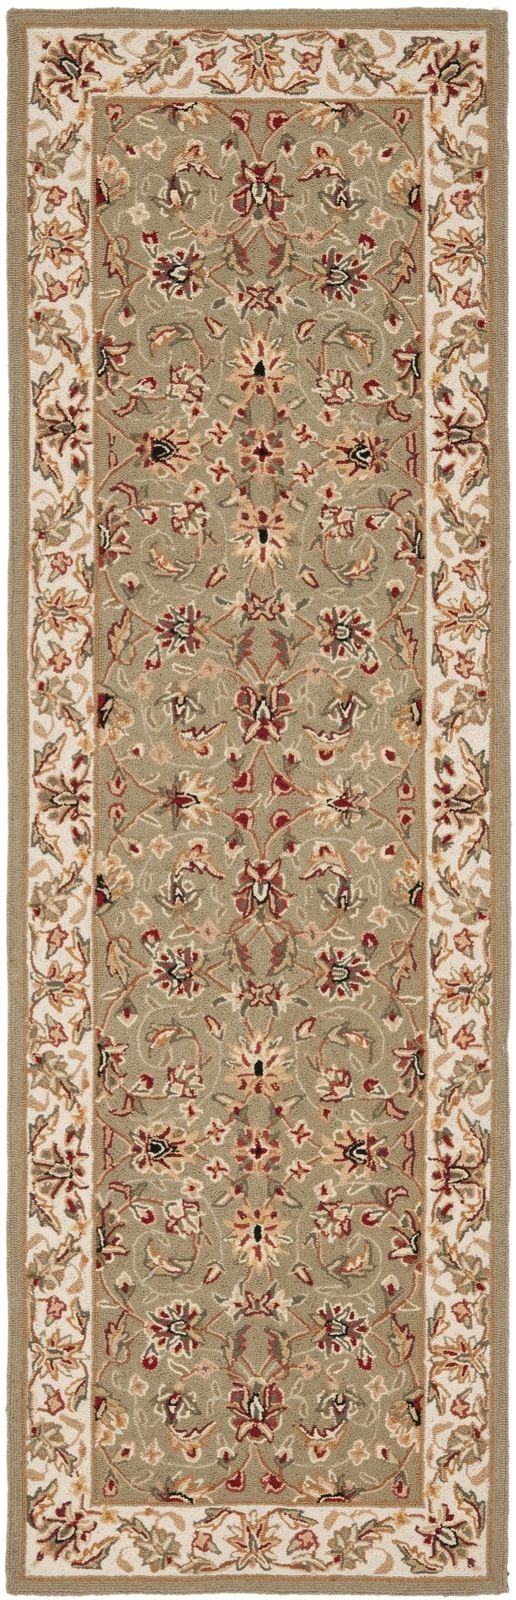 safavieh chelsea traditional area rug collection